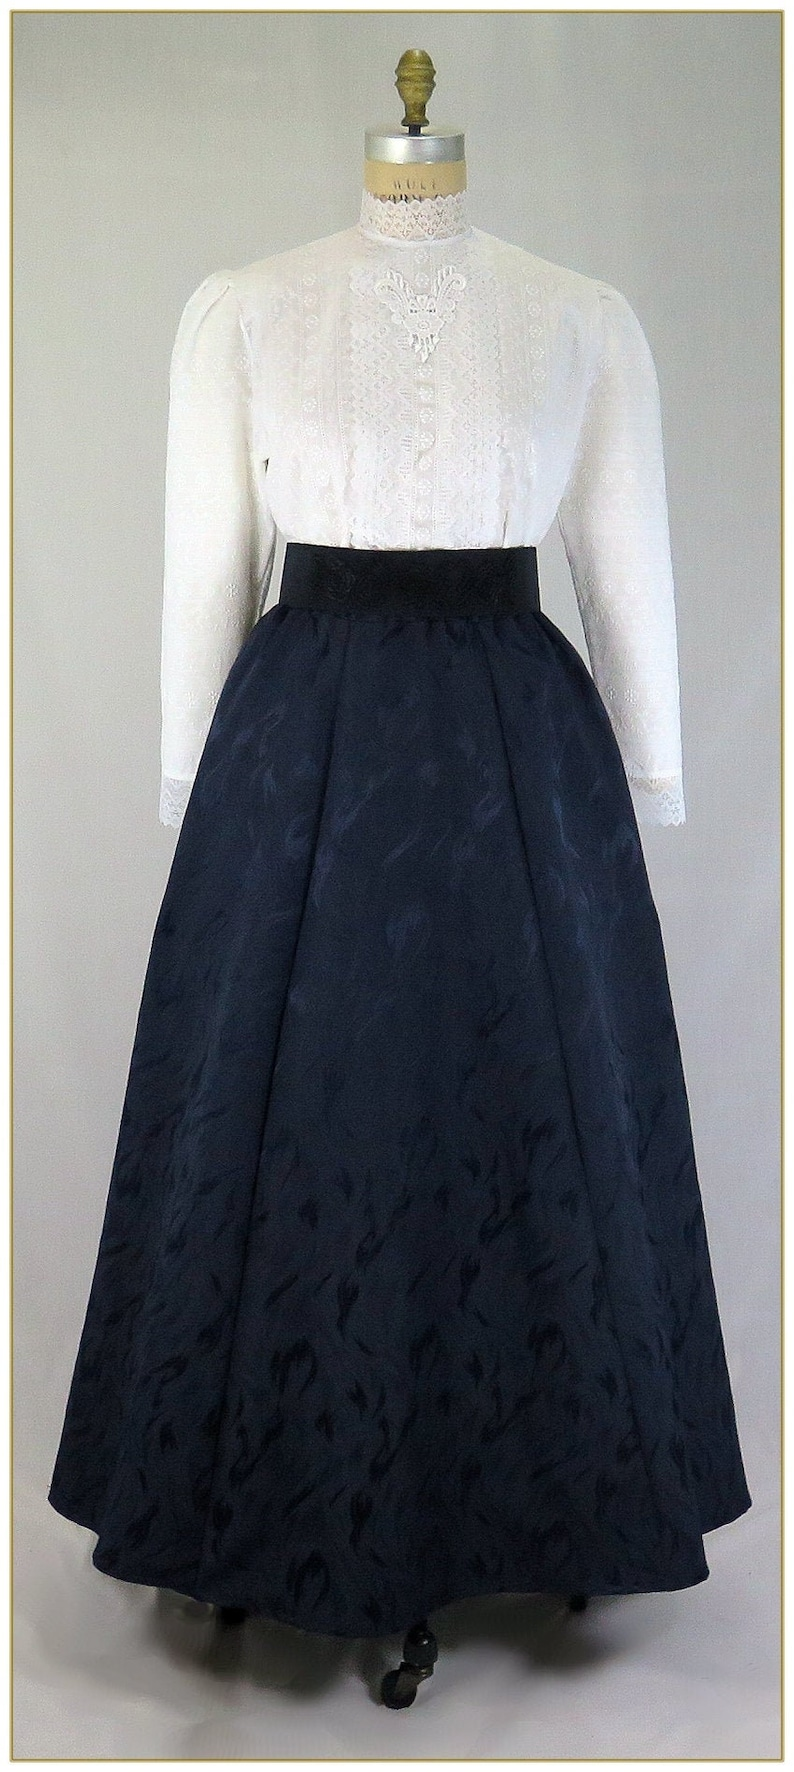 1890s-1900s Fashion, Clothing, Costumes Victorian Midnight Navy Blue Jacquard Skirt $68.00 AT vintagedancer.com